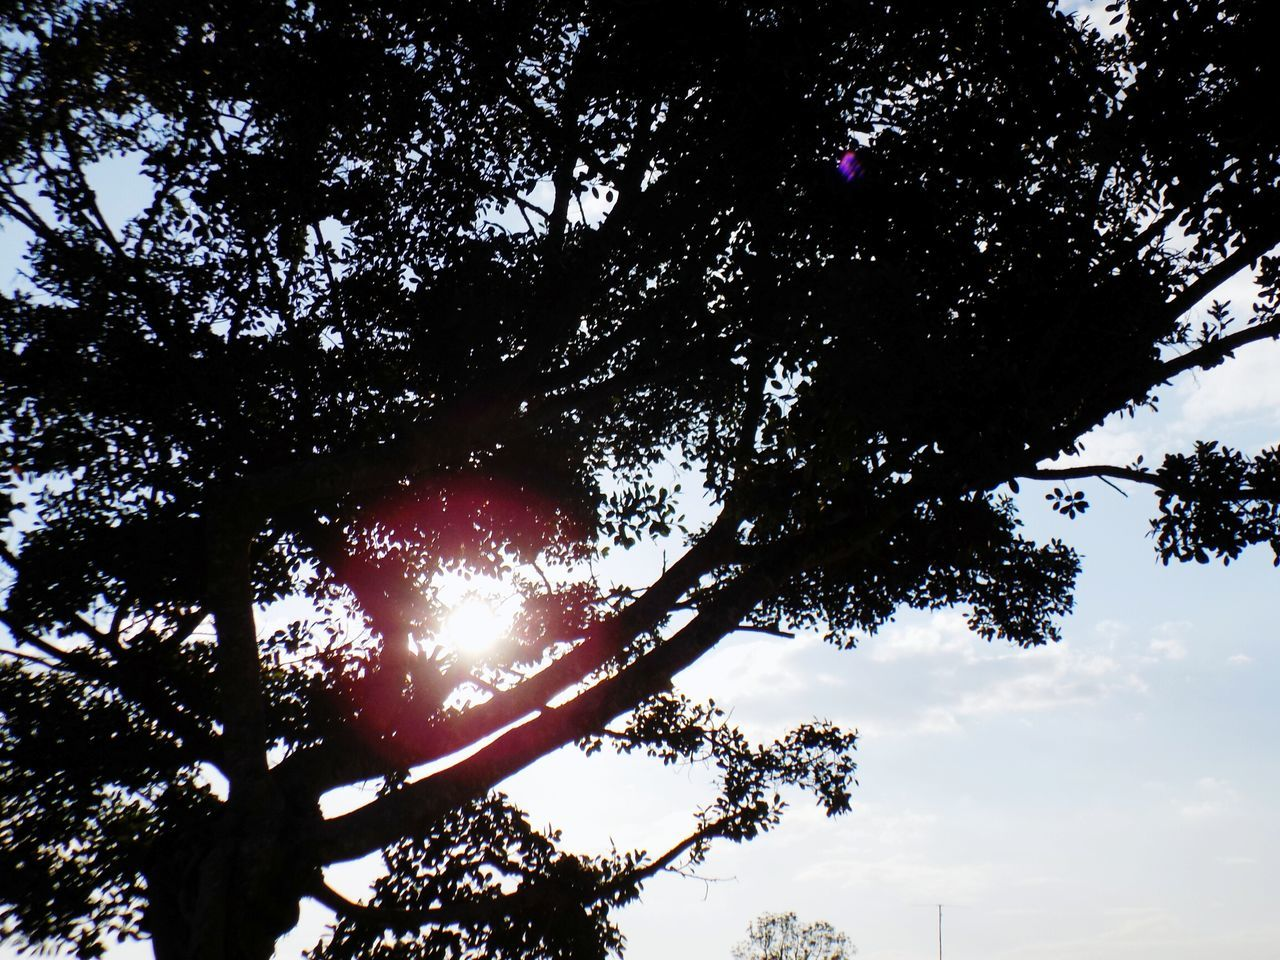 tree, low angle view, nature, tranquility, sky, beauty in nature, outdoors, sun, branch, day, scenics, tranquil scene, sunlight, growth, no people, astronomy